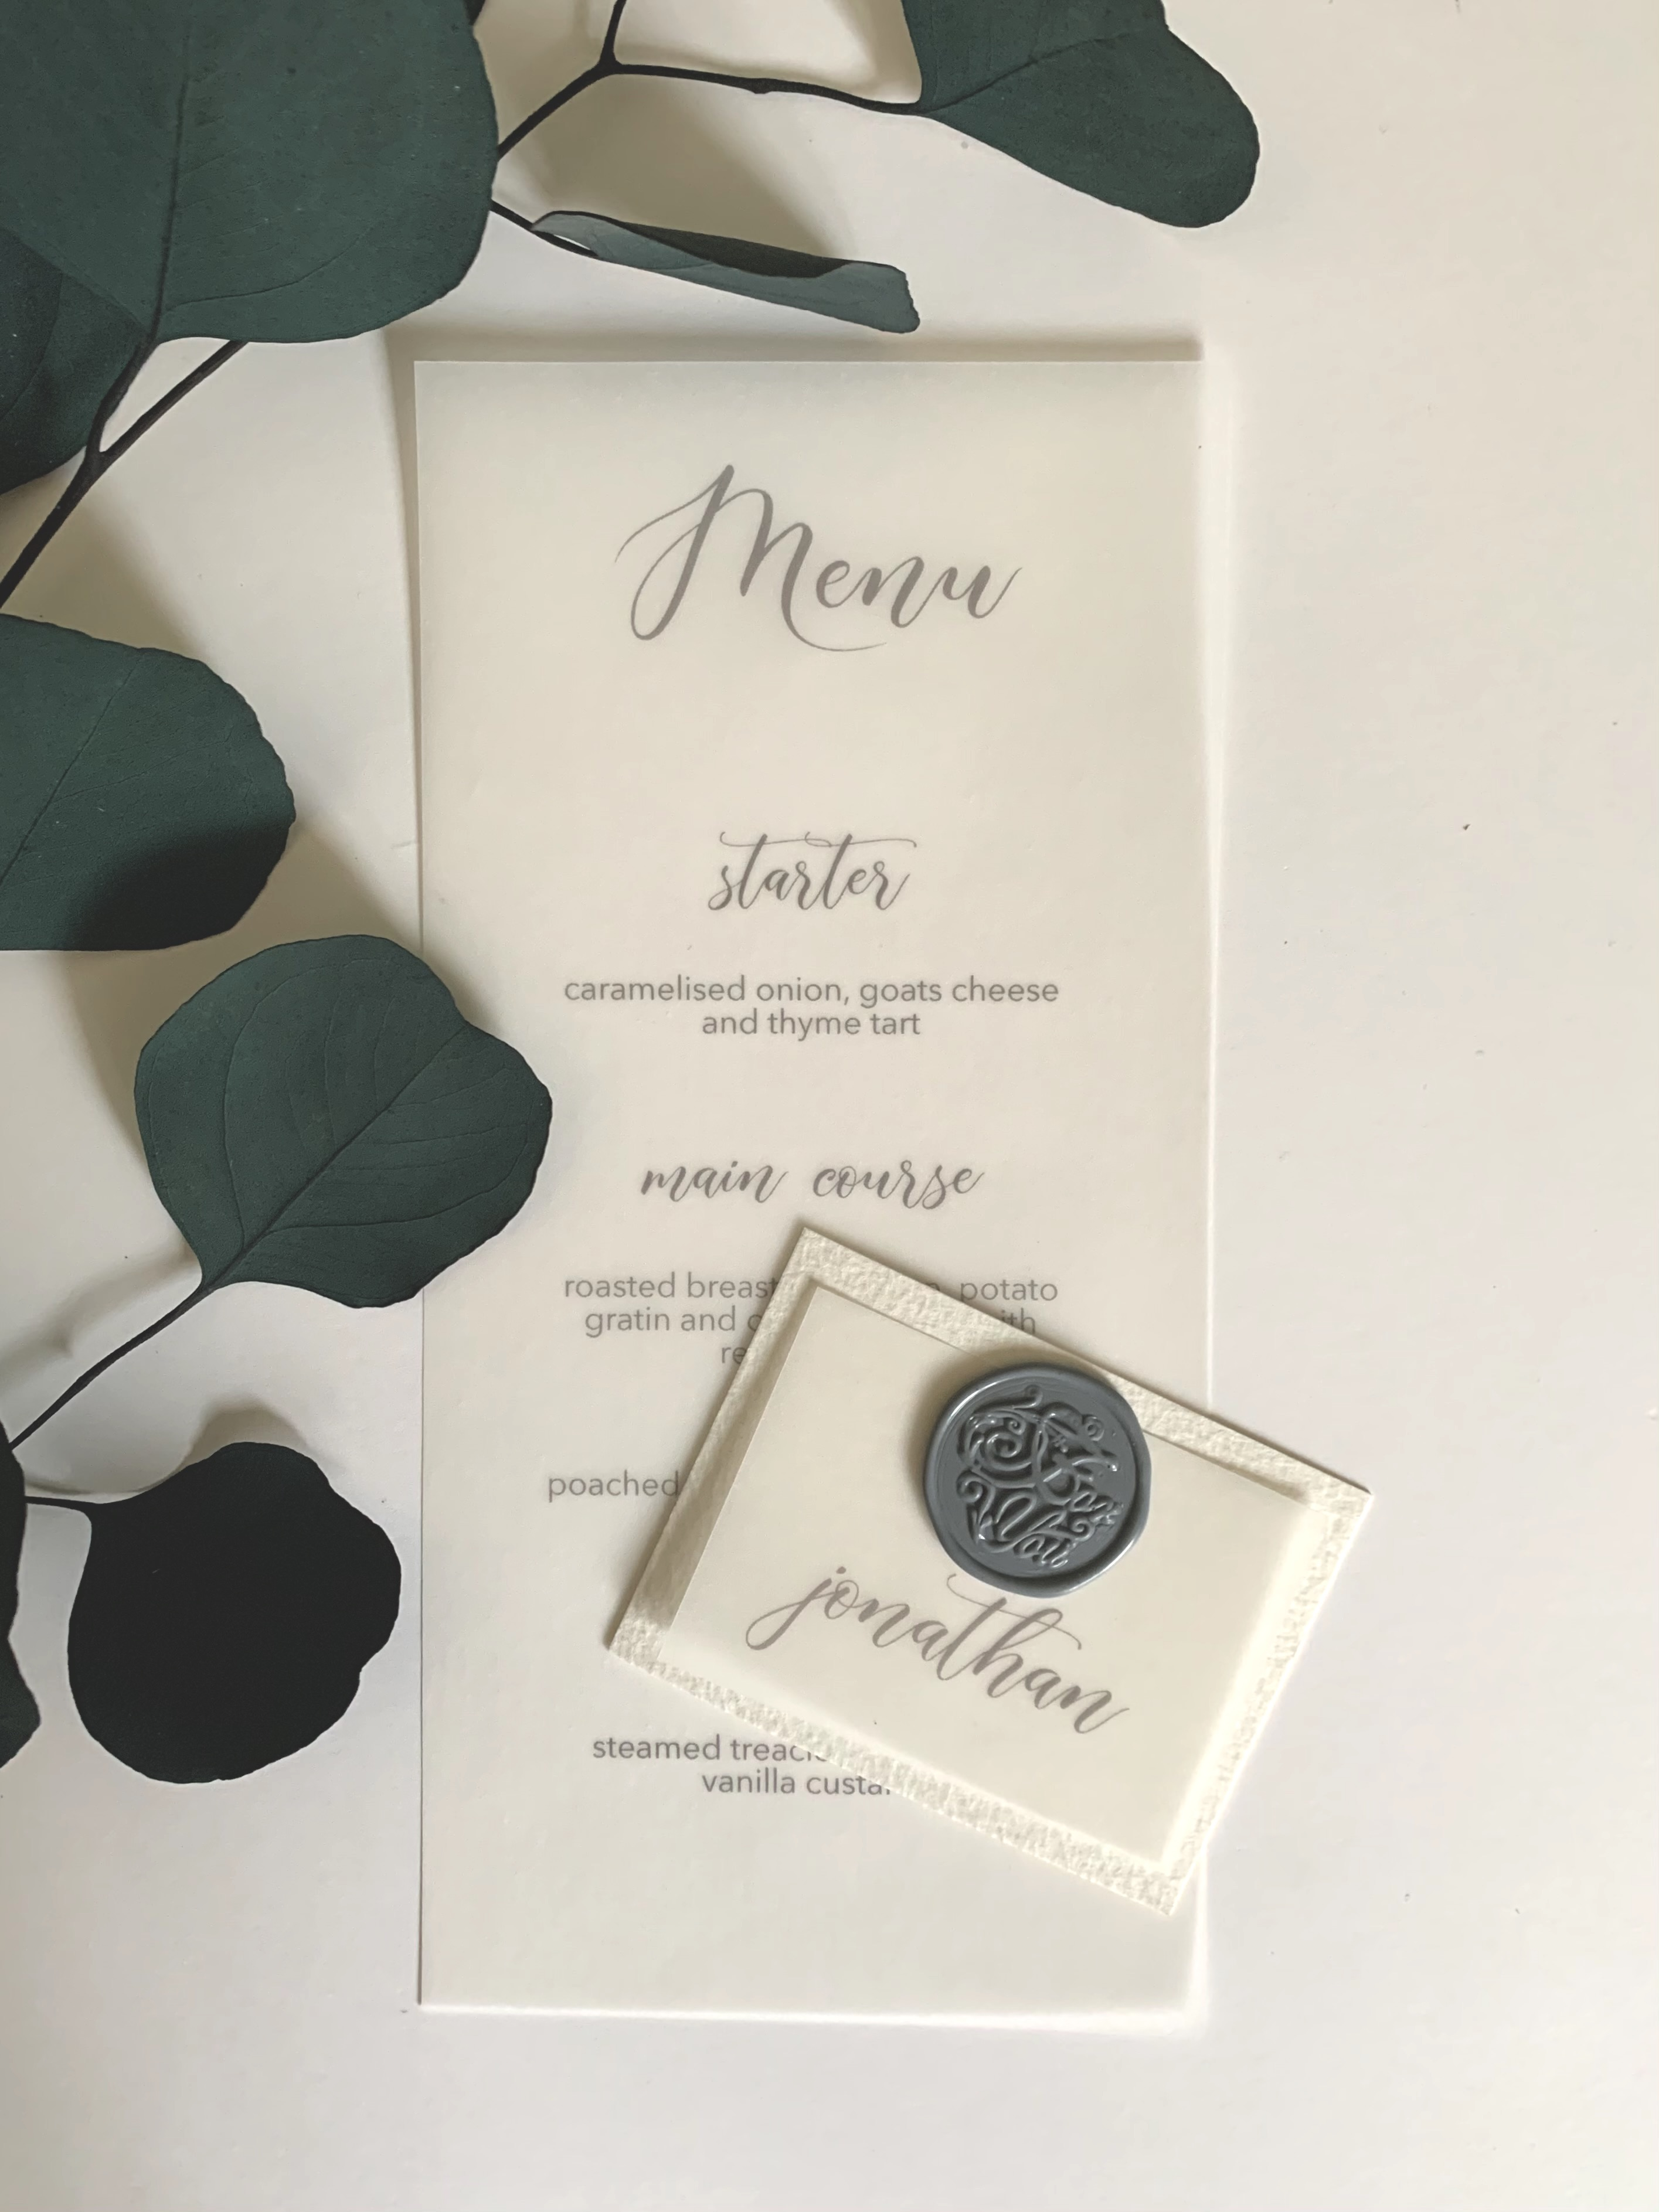 Menu printed onto vellum with layered vellum placecard including wax seal